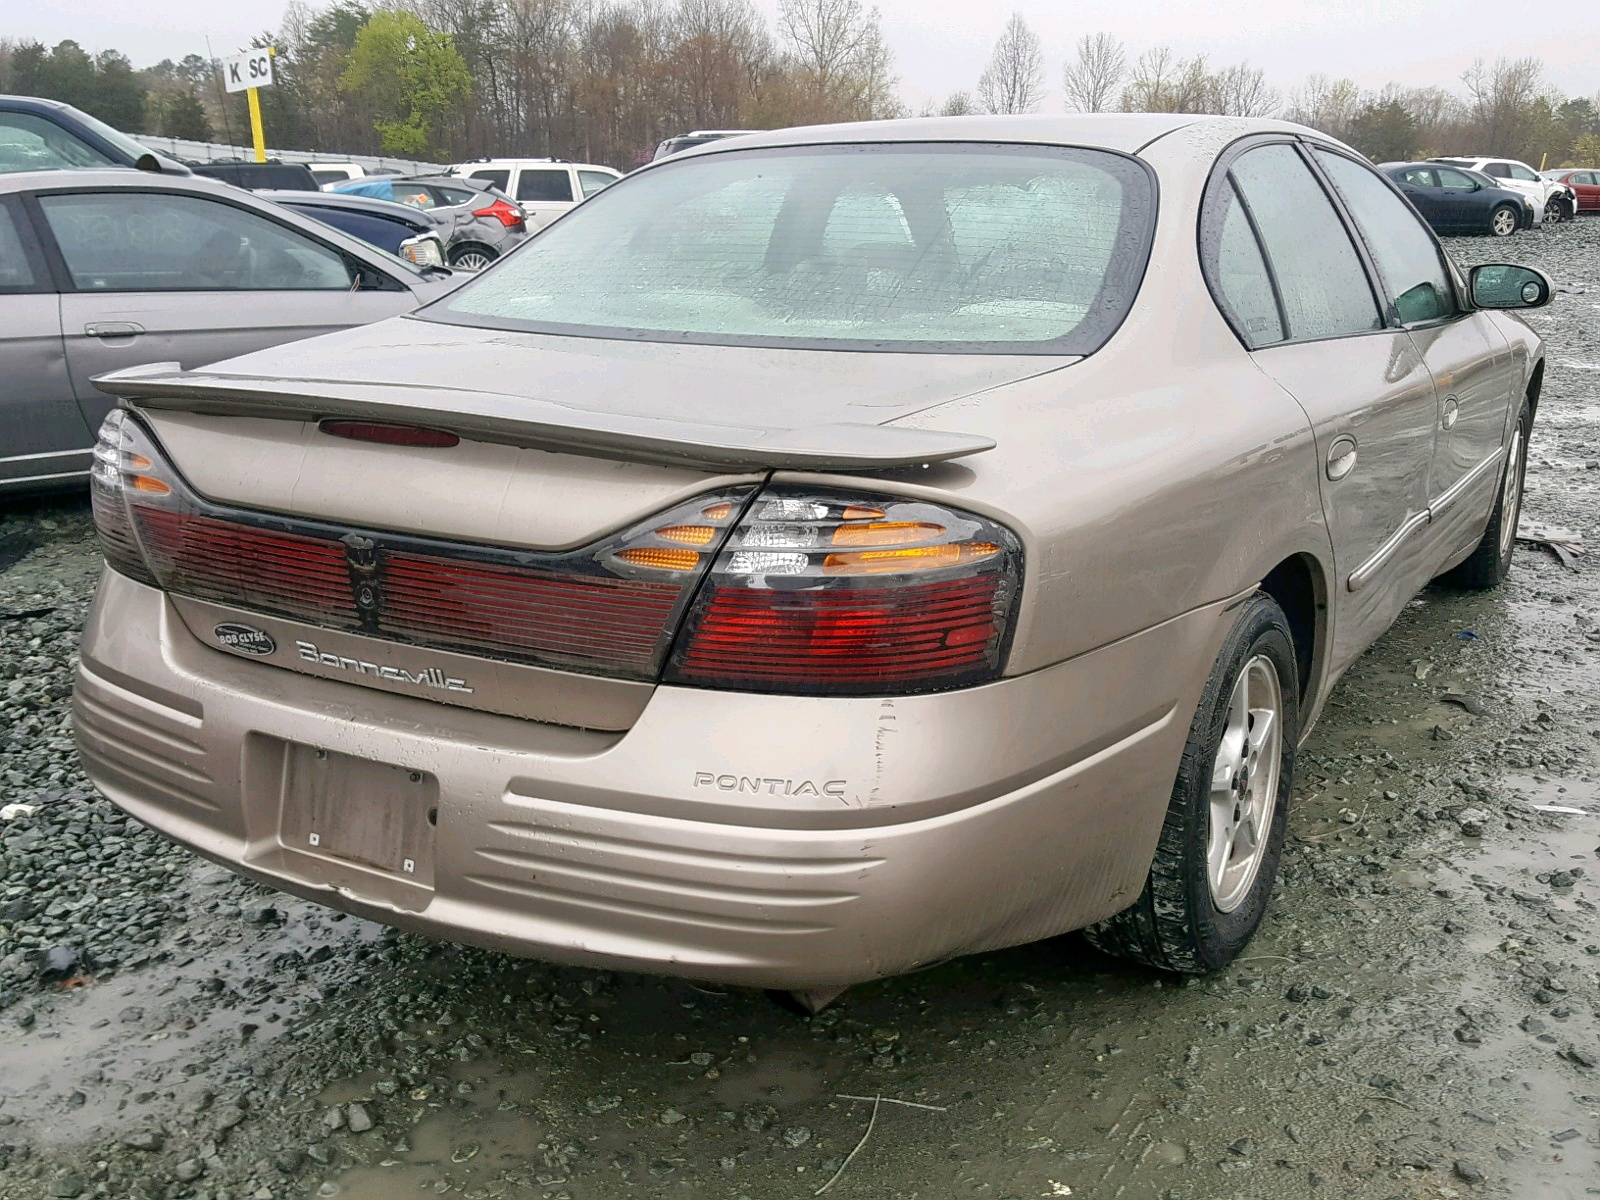 2002 Pontiac Bonneville Lot 31890489